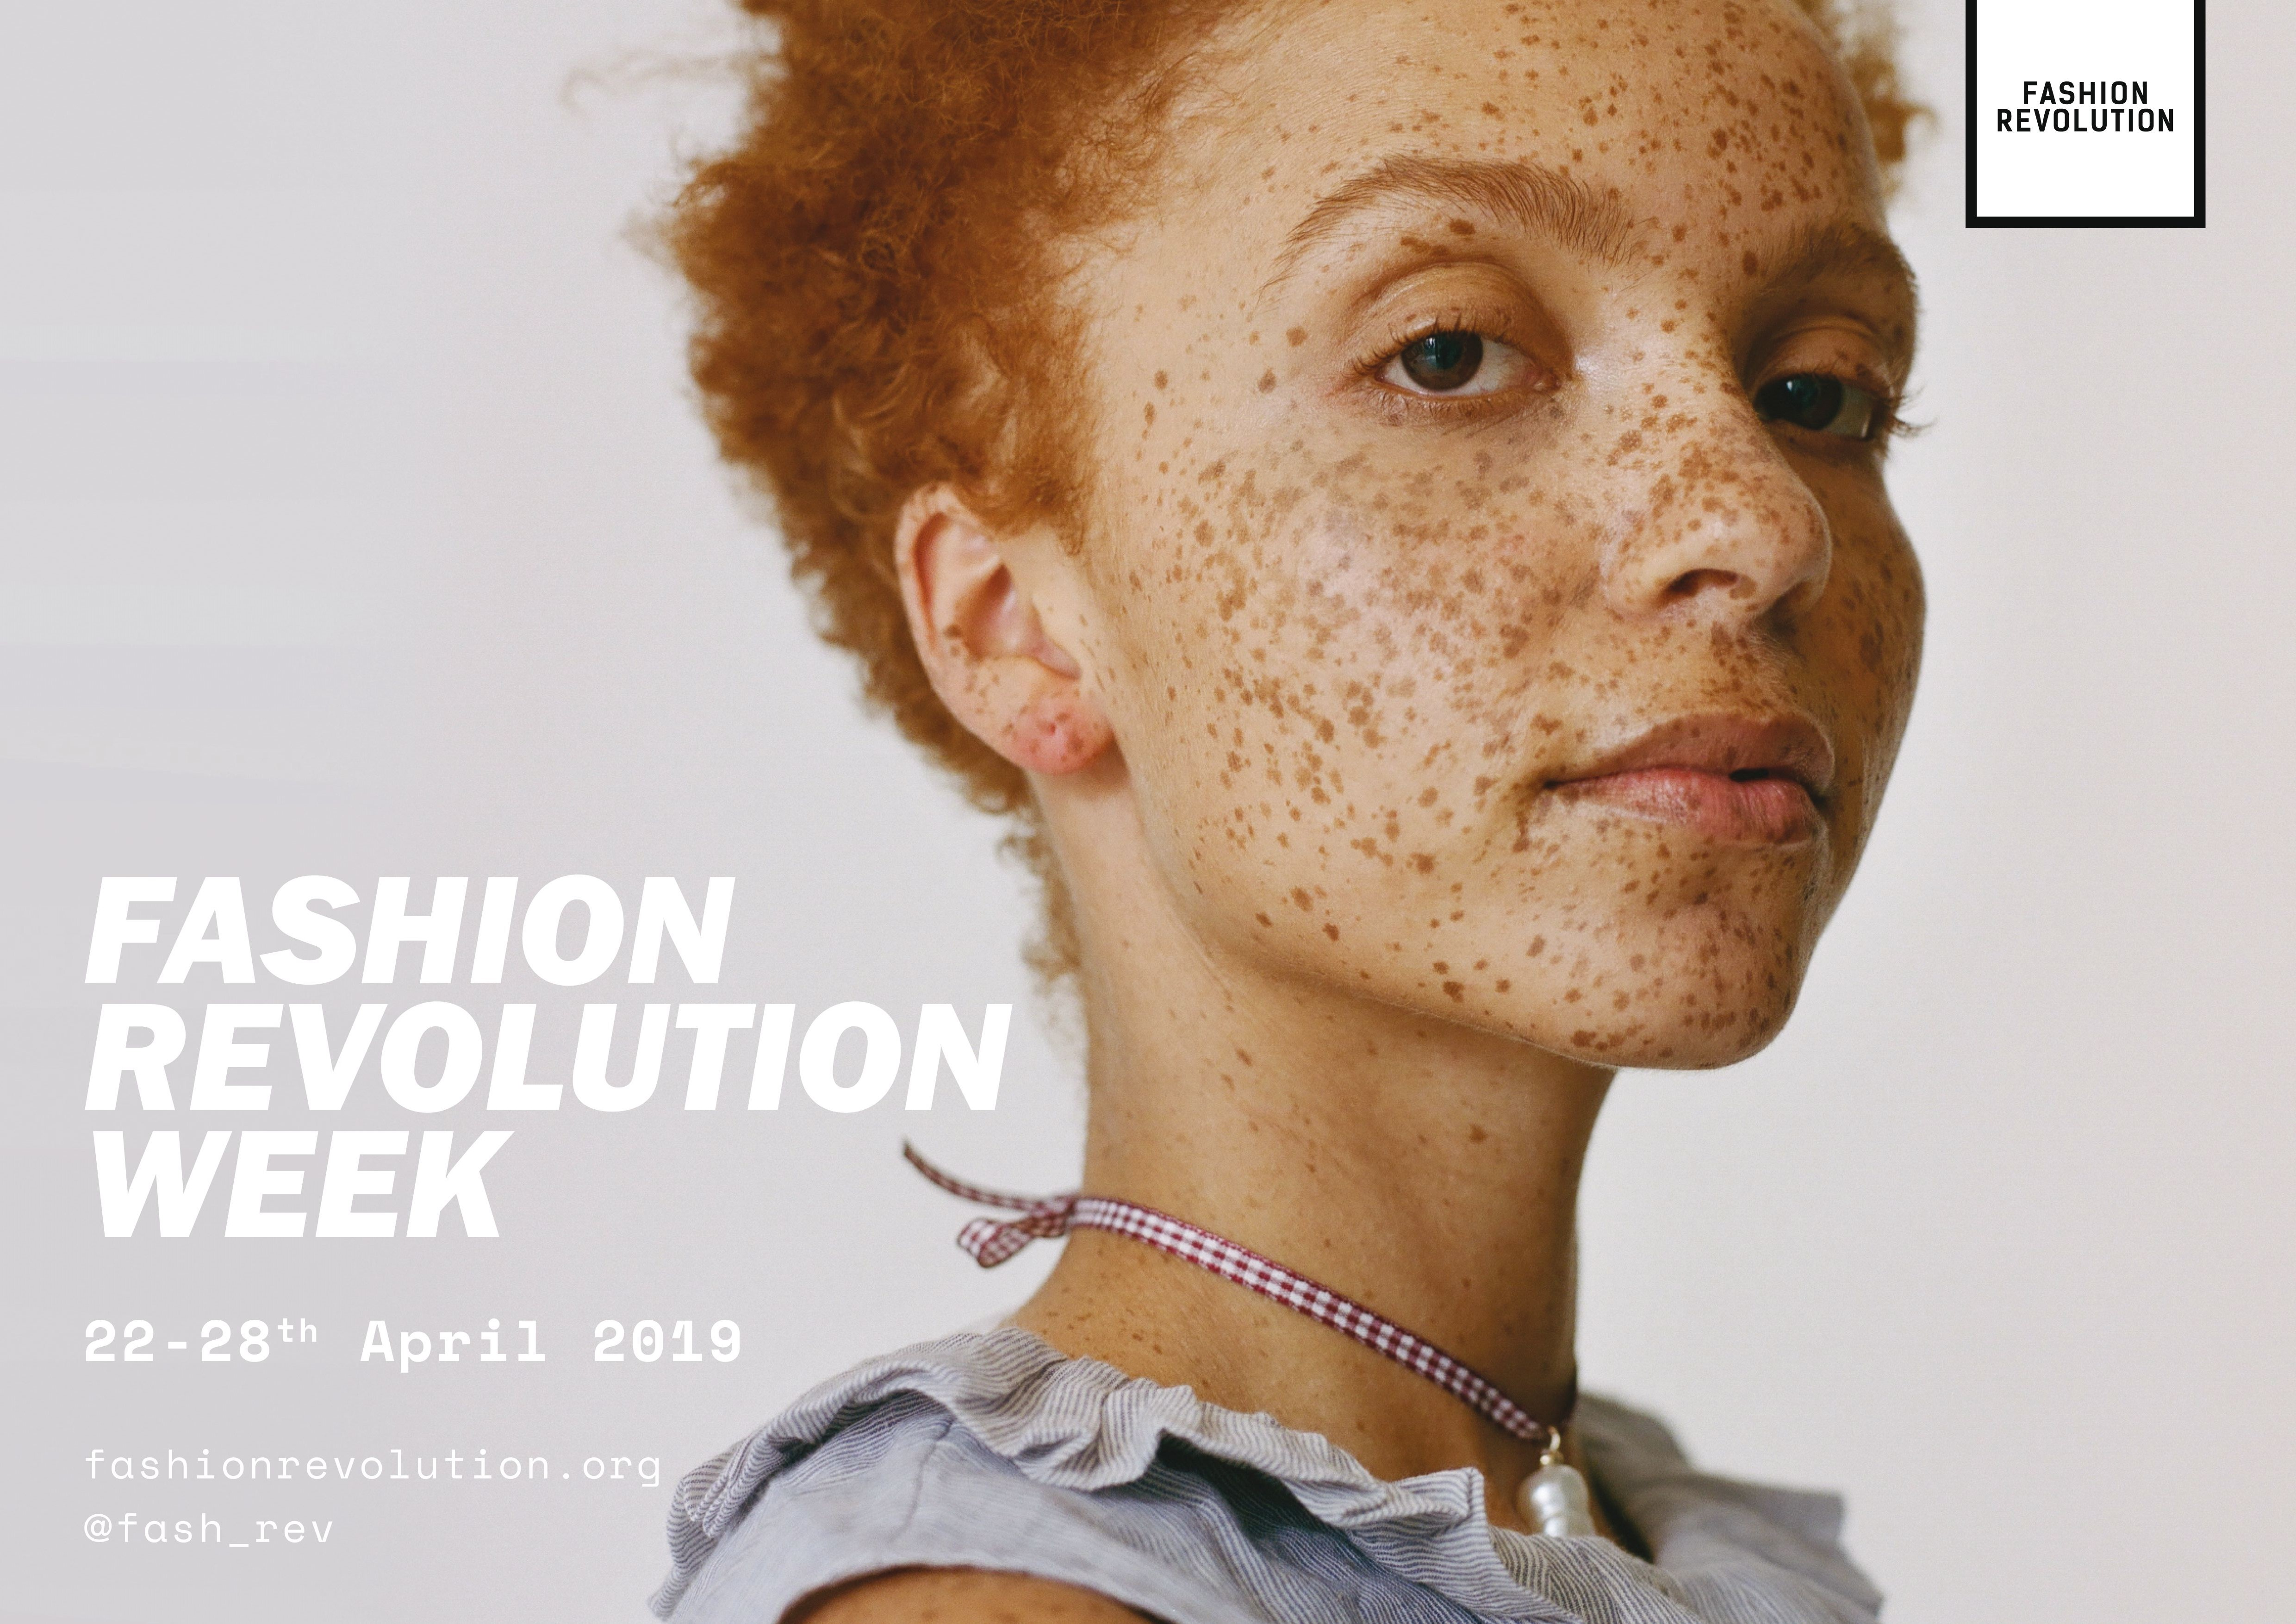 Fashion Revolution Week 2019